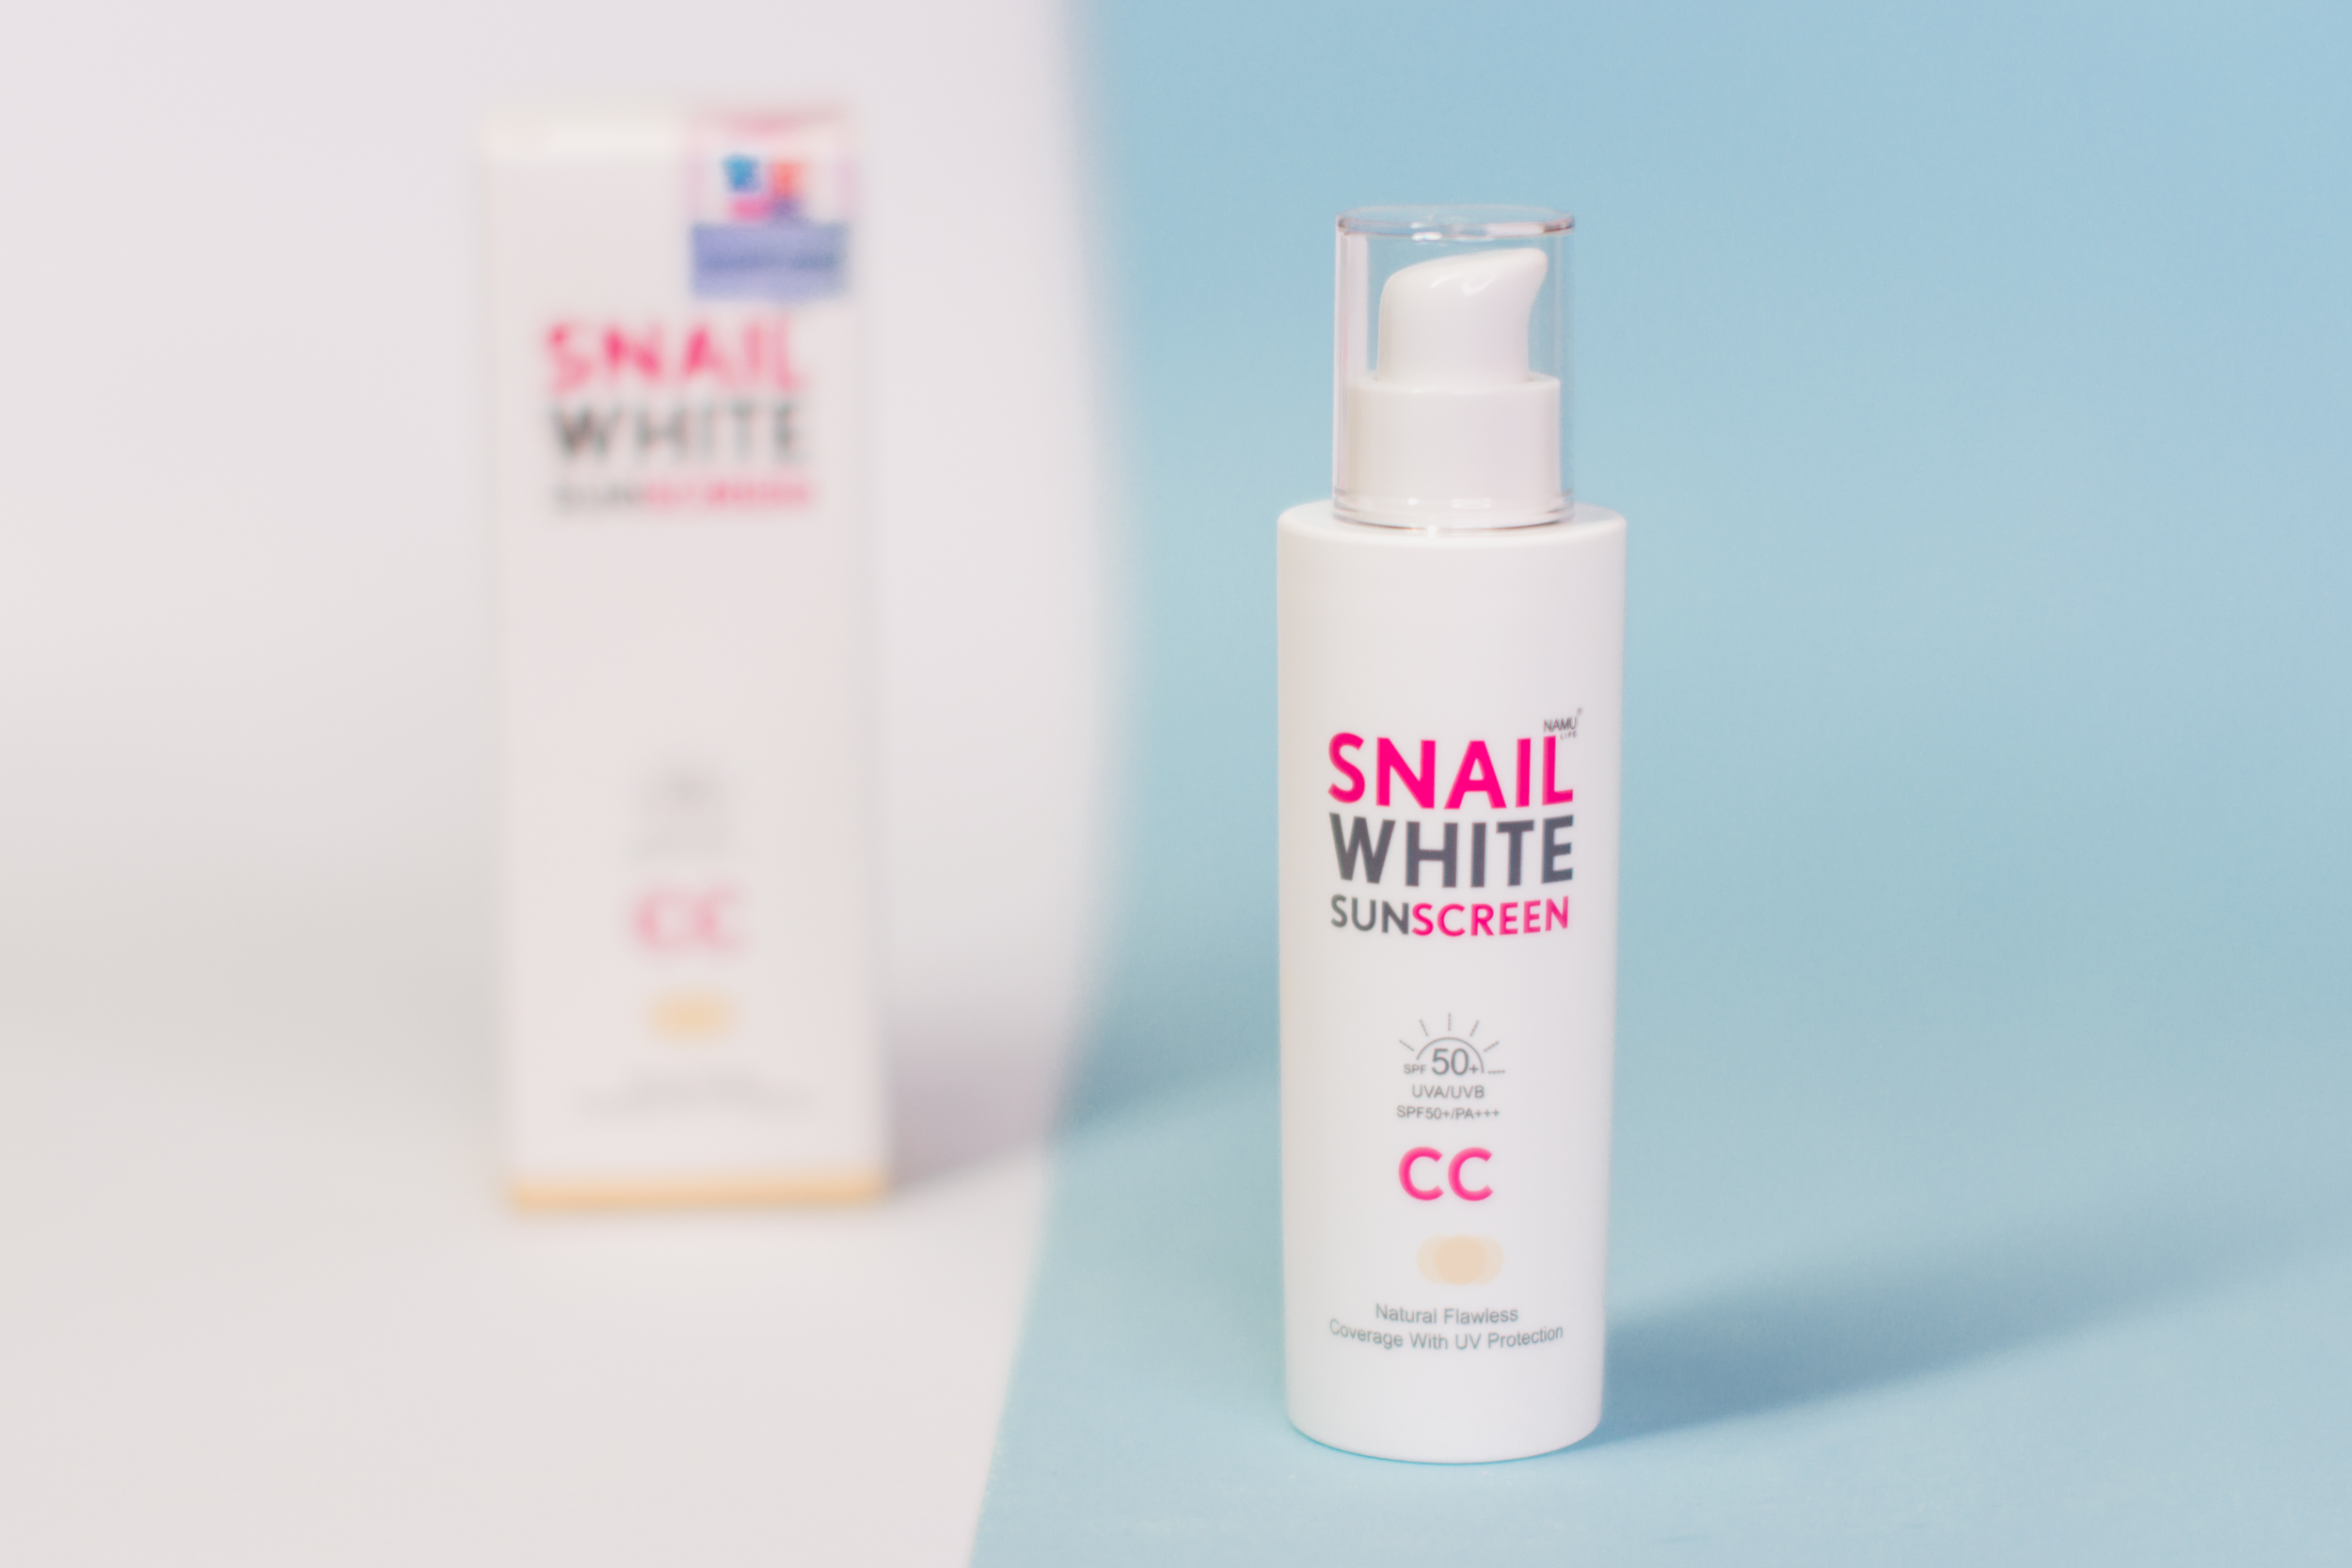 snail-white_icy-mask_sunscreen-cc_review-philippines_2019-6.JPG